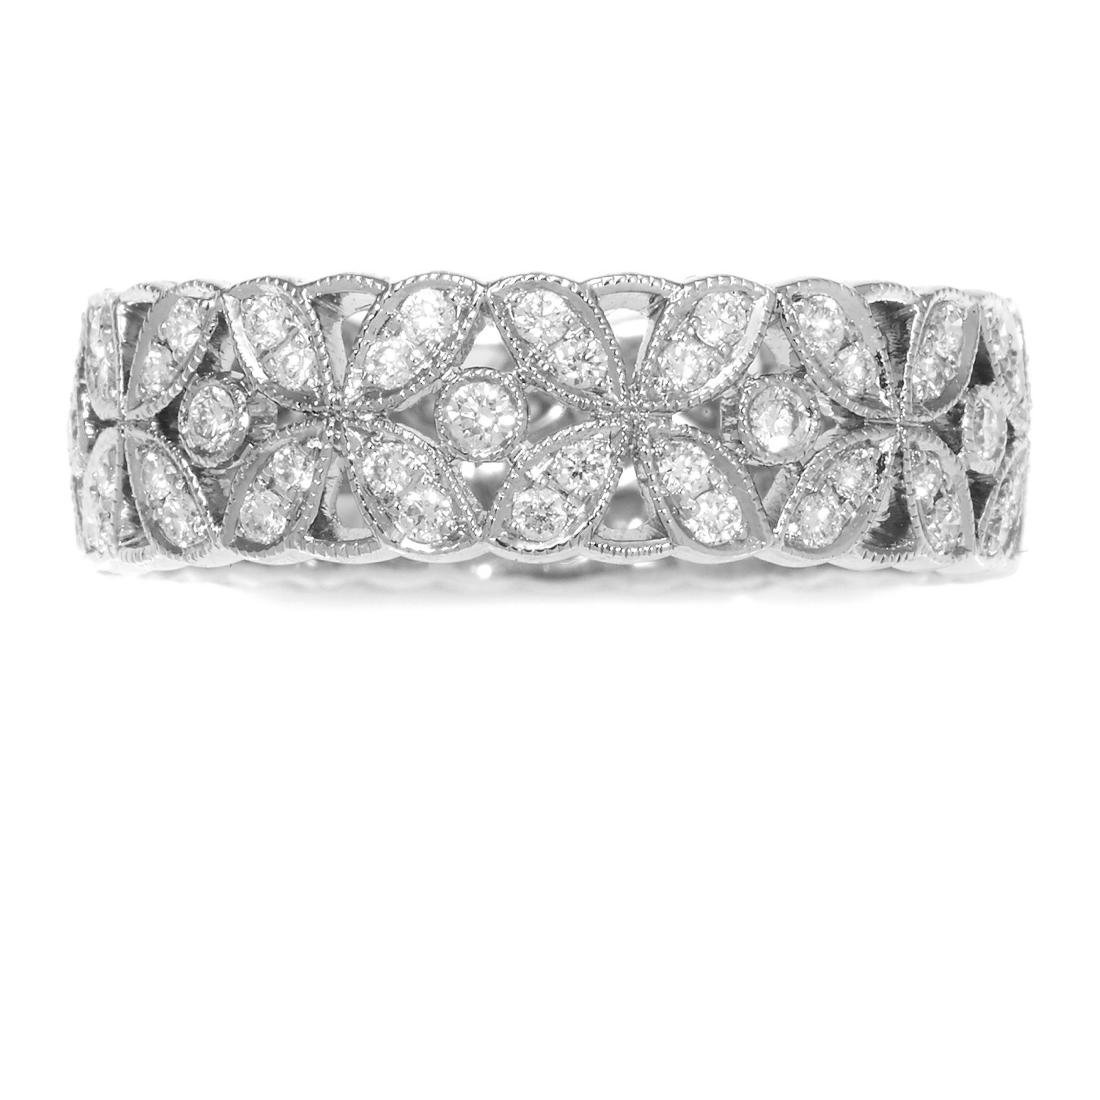 A DIAMOND BAND RING in platinum, the band decorated